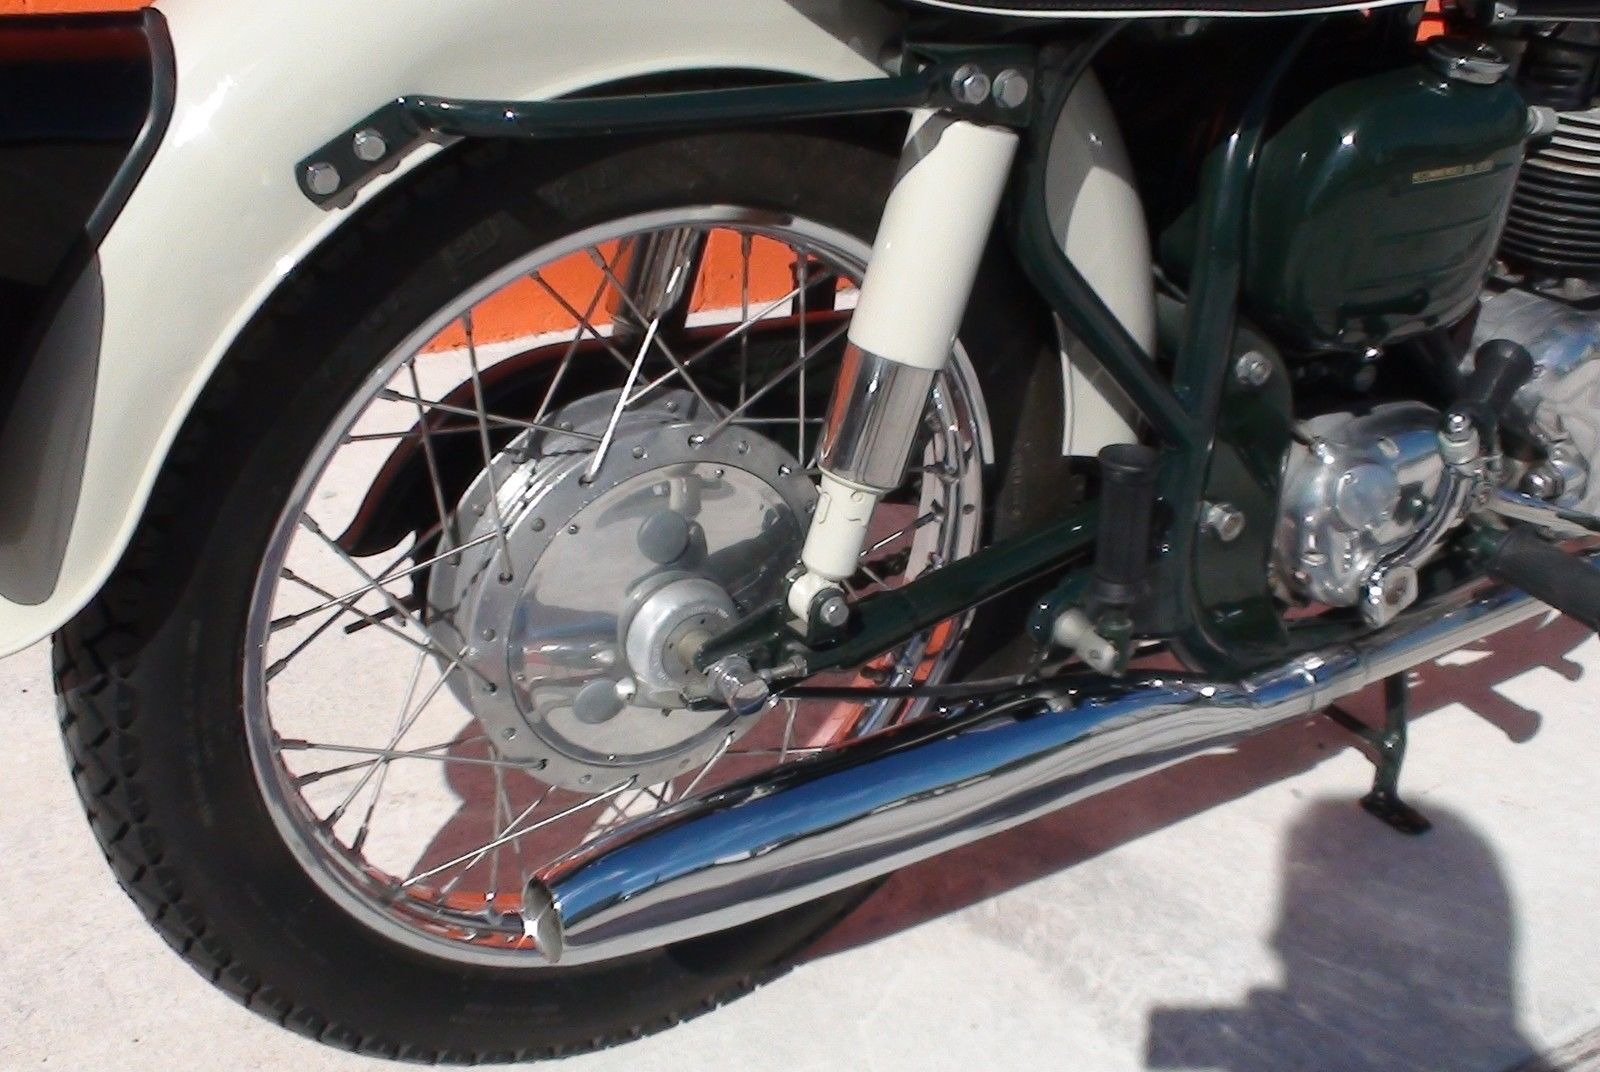 Norton Dominator 88 - 1960 - Rear Shock, Muffler, Rear Hub and Swing Arm.